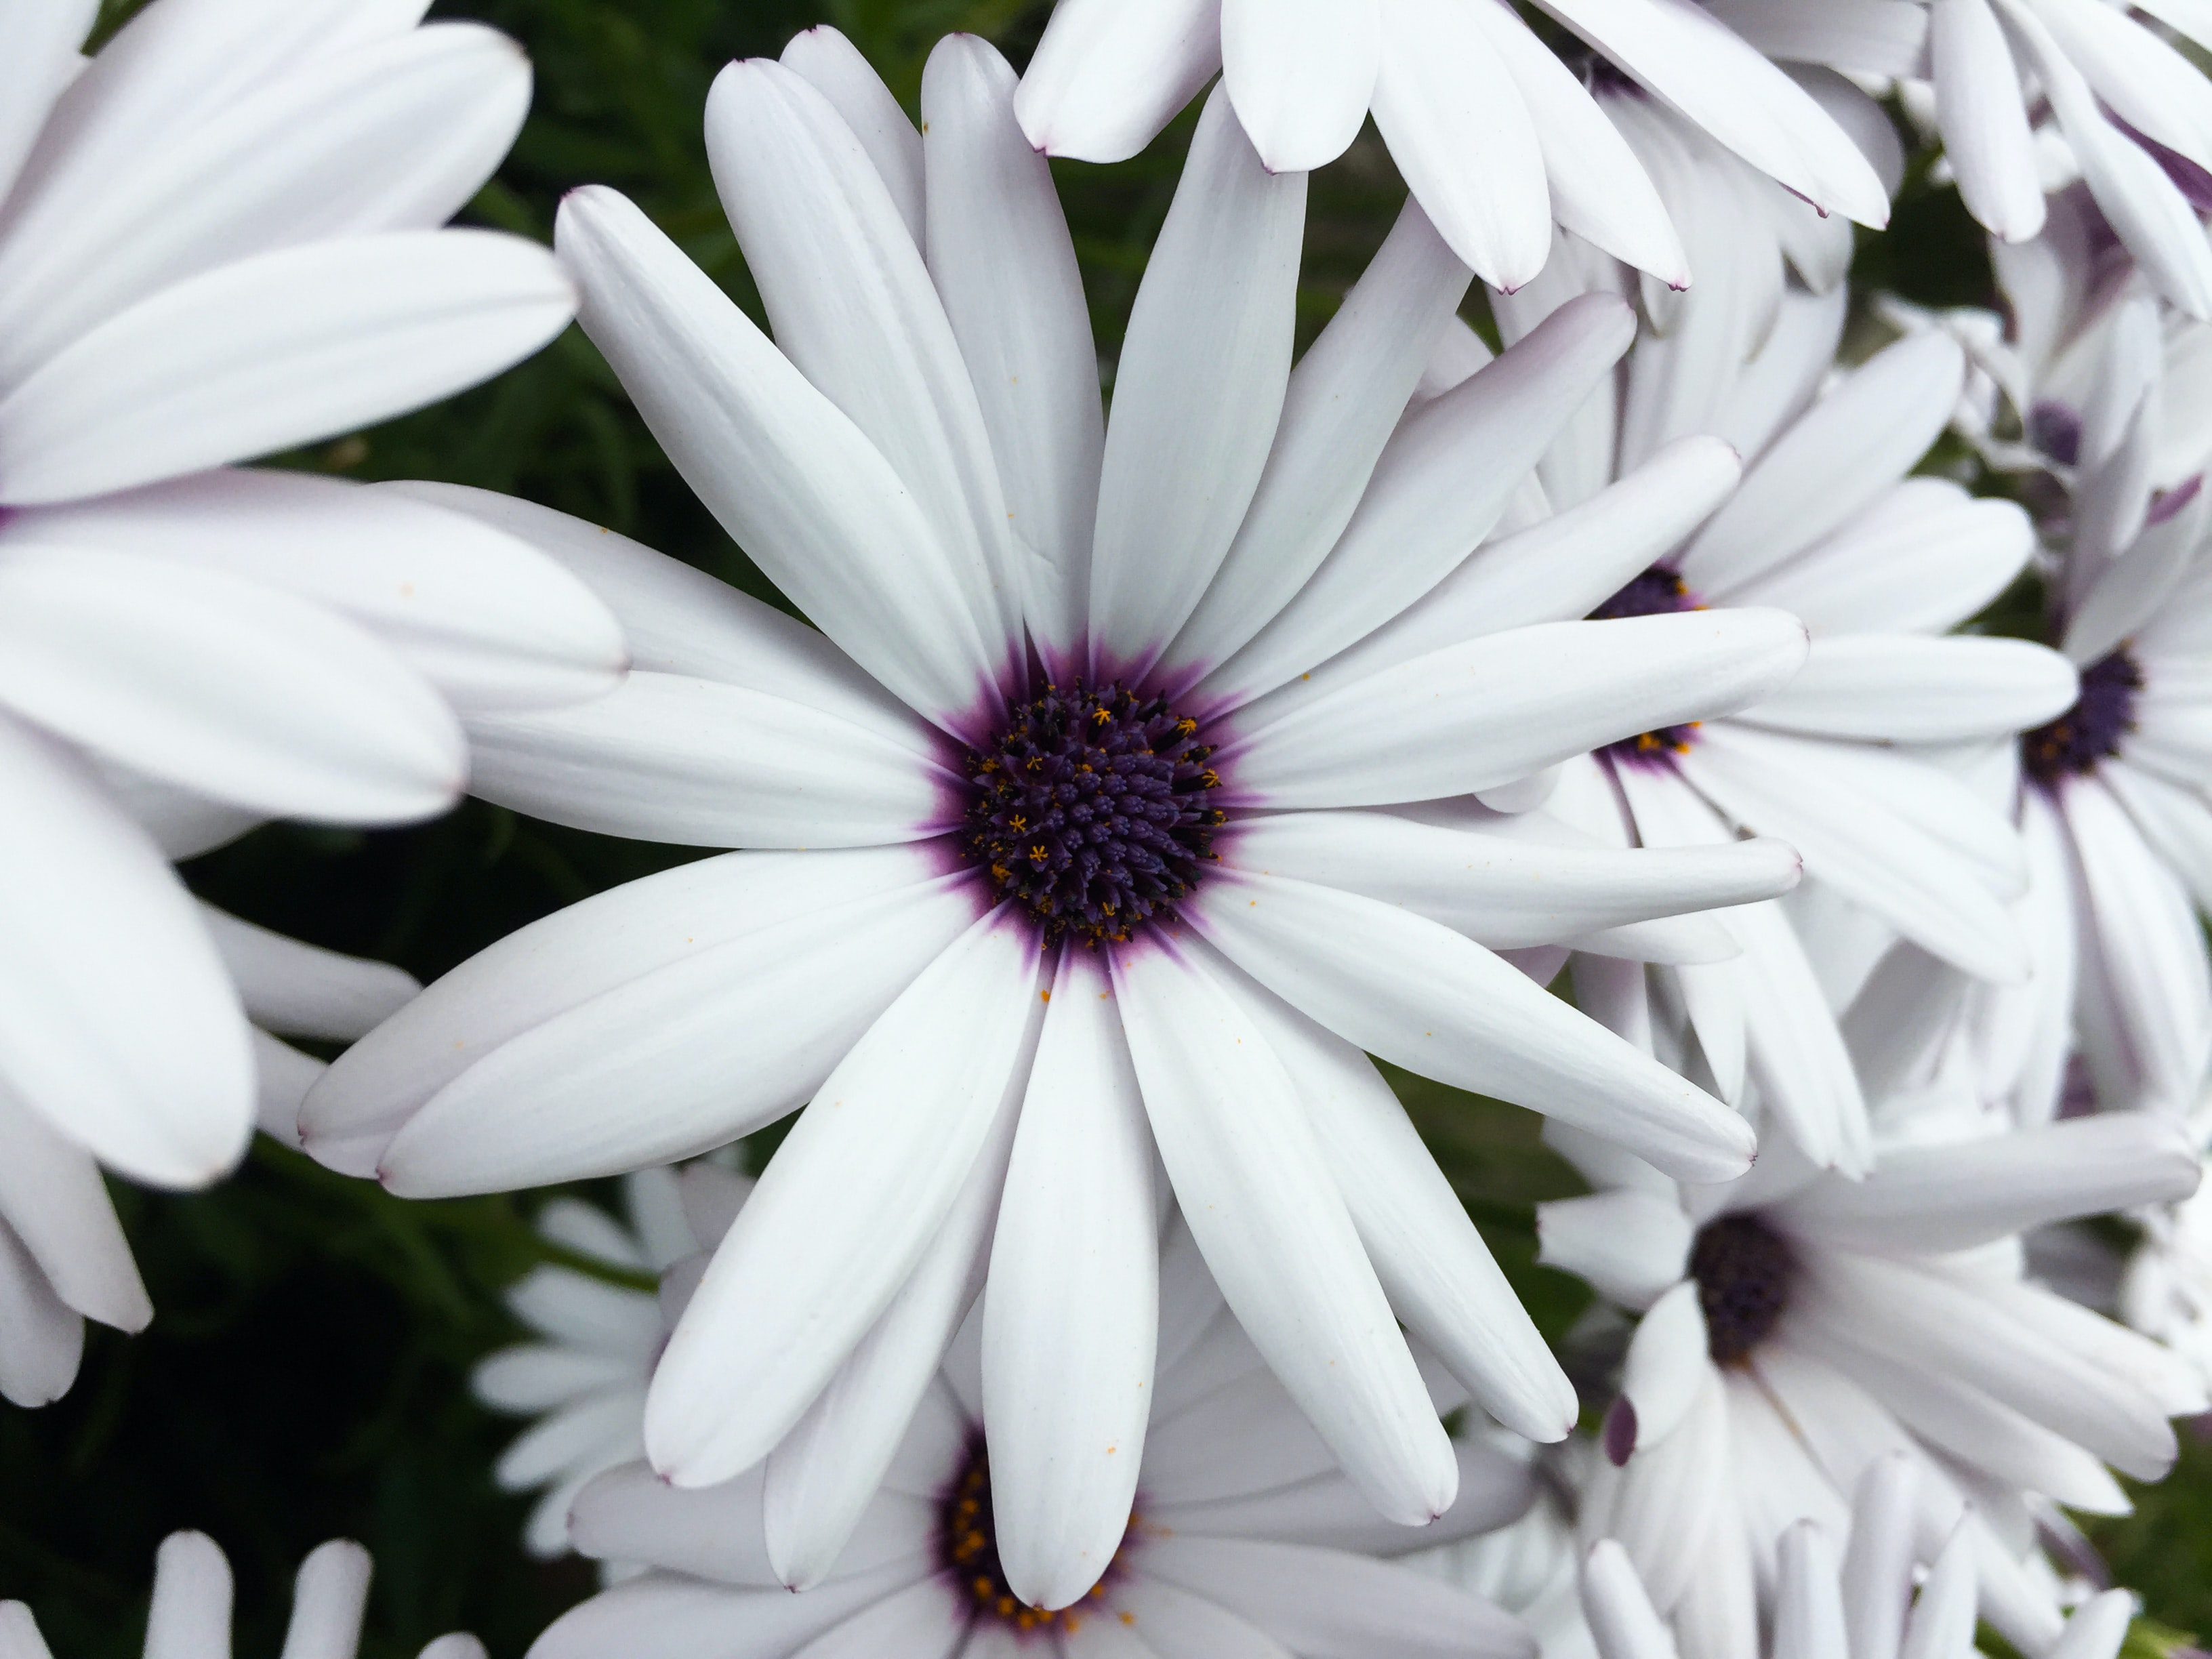 closed up photo of white petaled flower